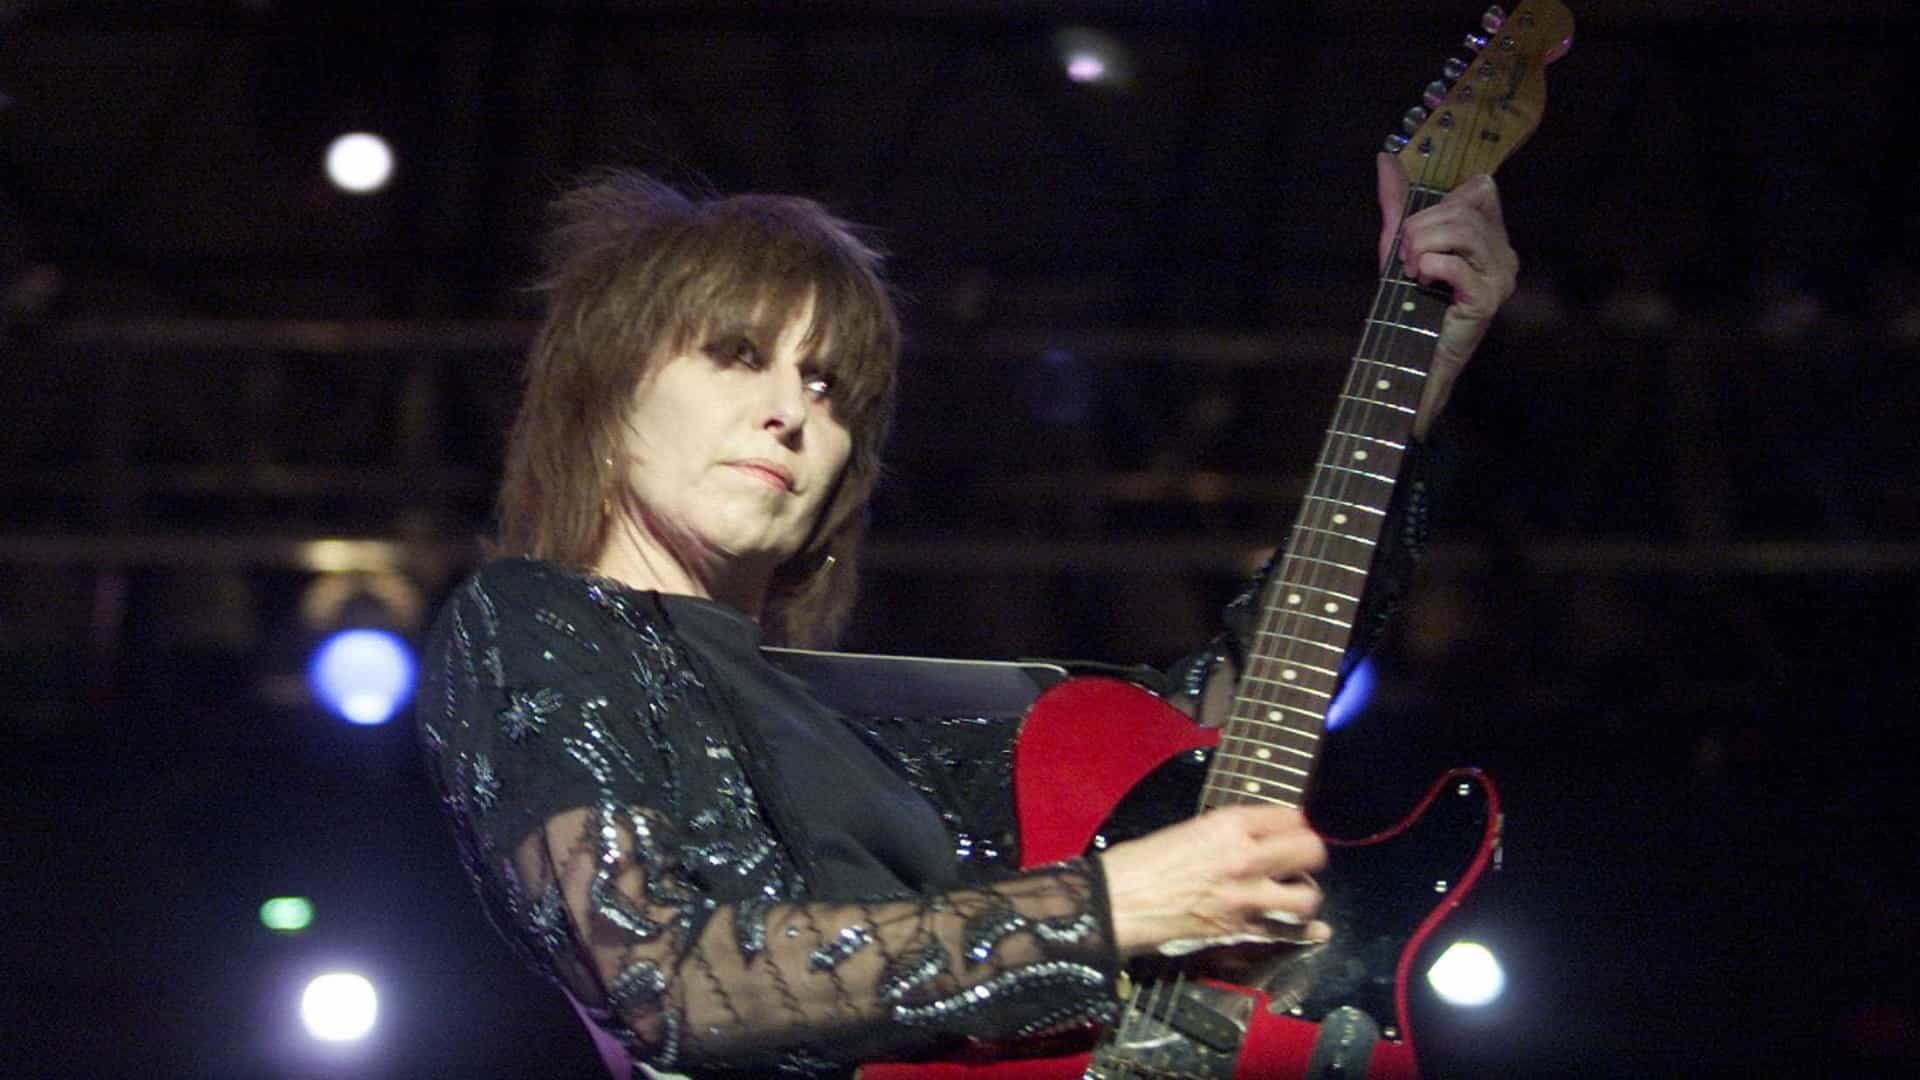 Festival cooljazz: Guitarra assinada por Chrissie Hynde rende 1.565 euros